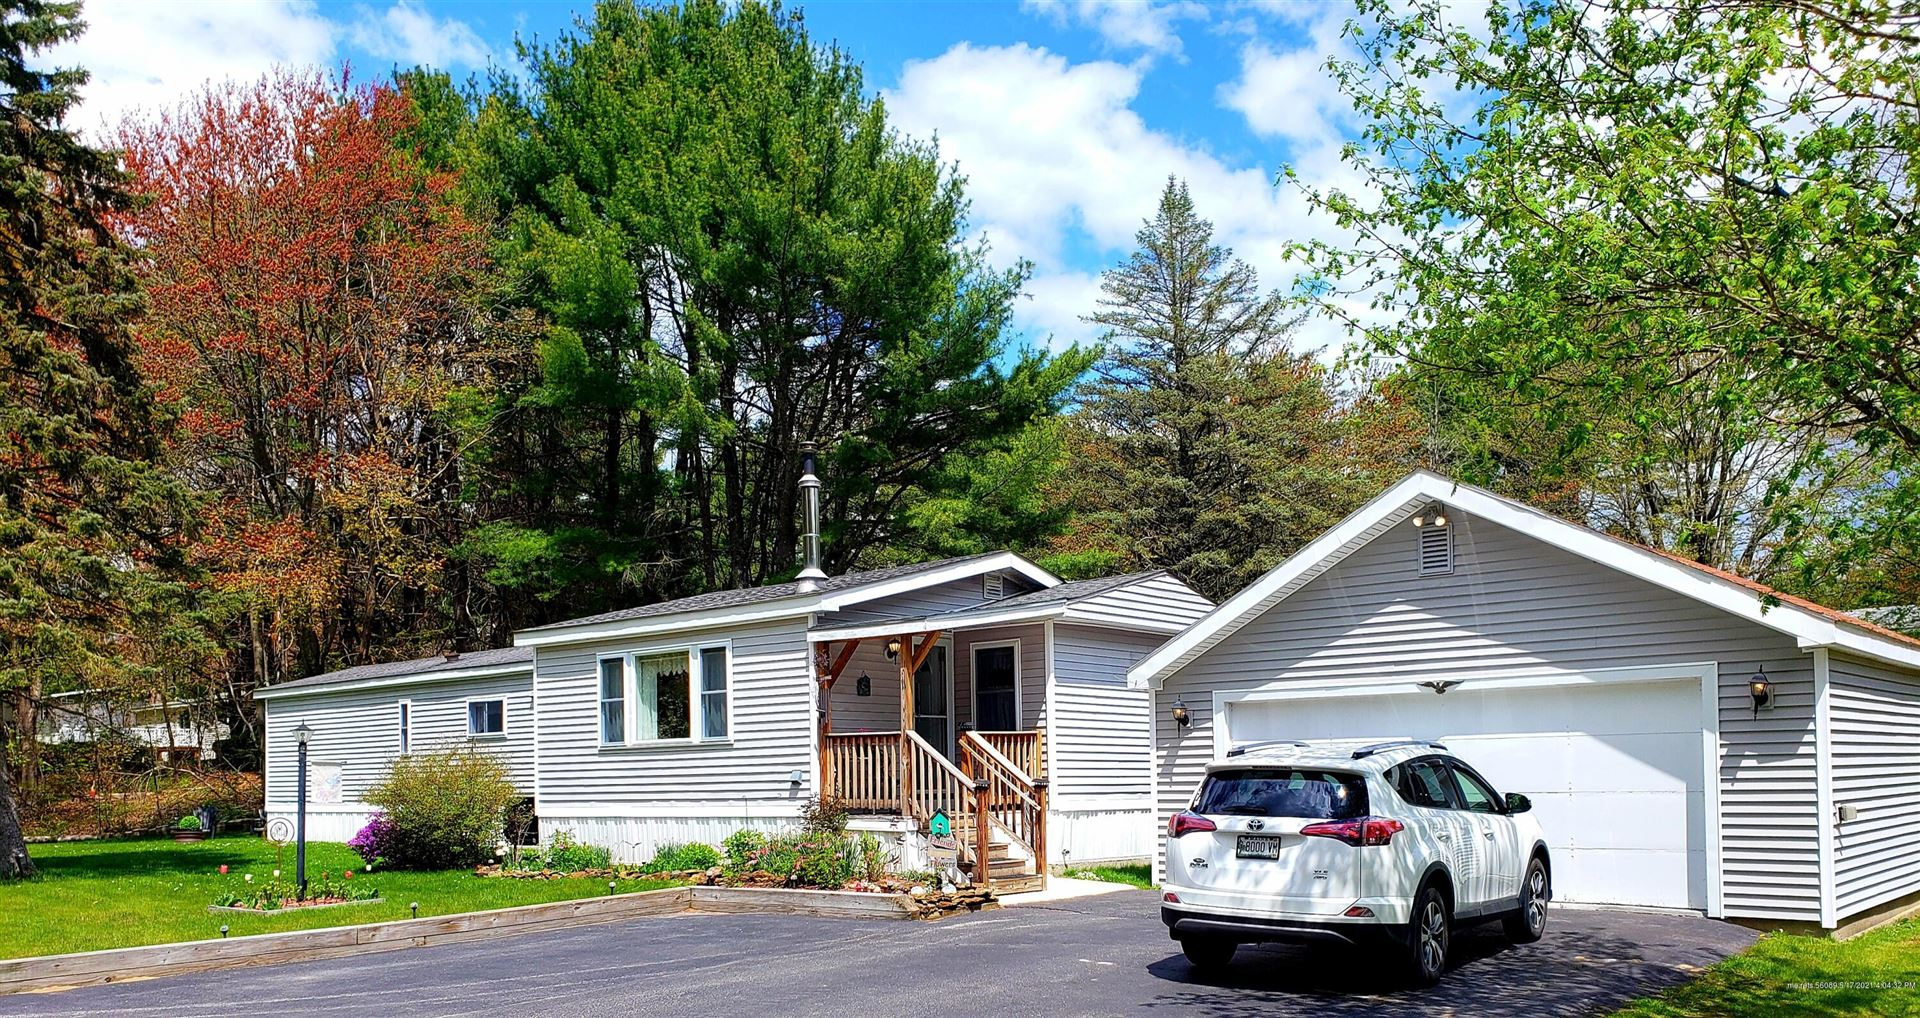 Photo of 11 Dode Drive, Saco, ME 04072 (MLS # 1491809)